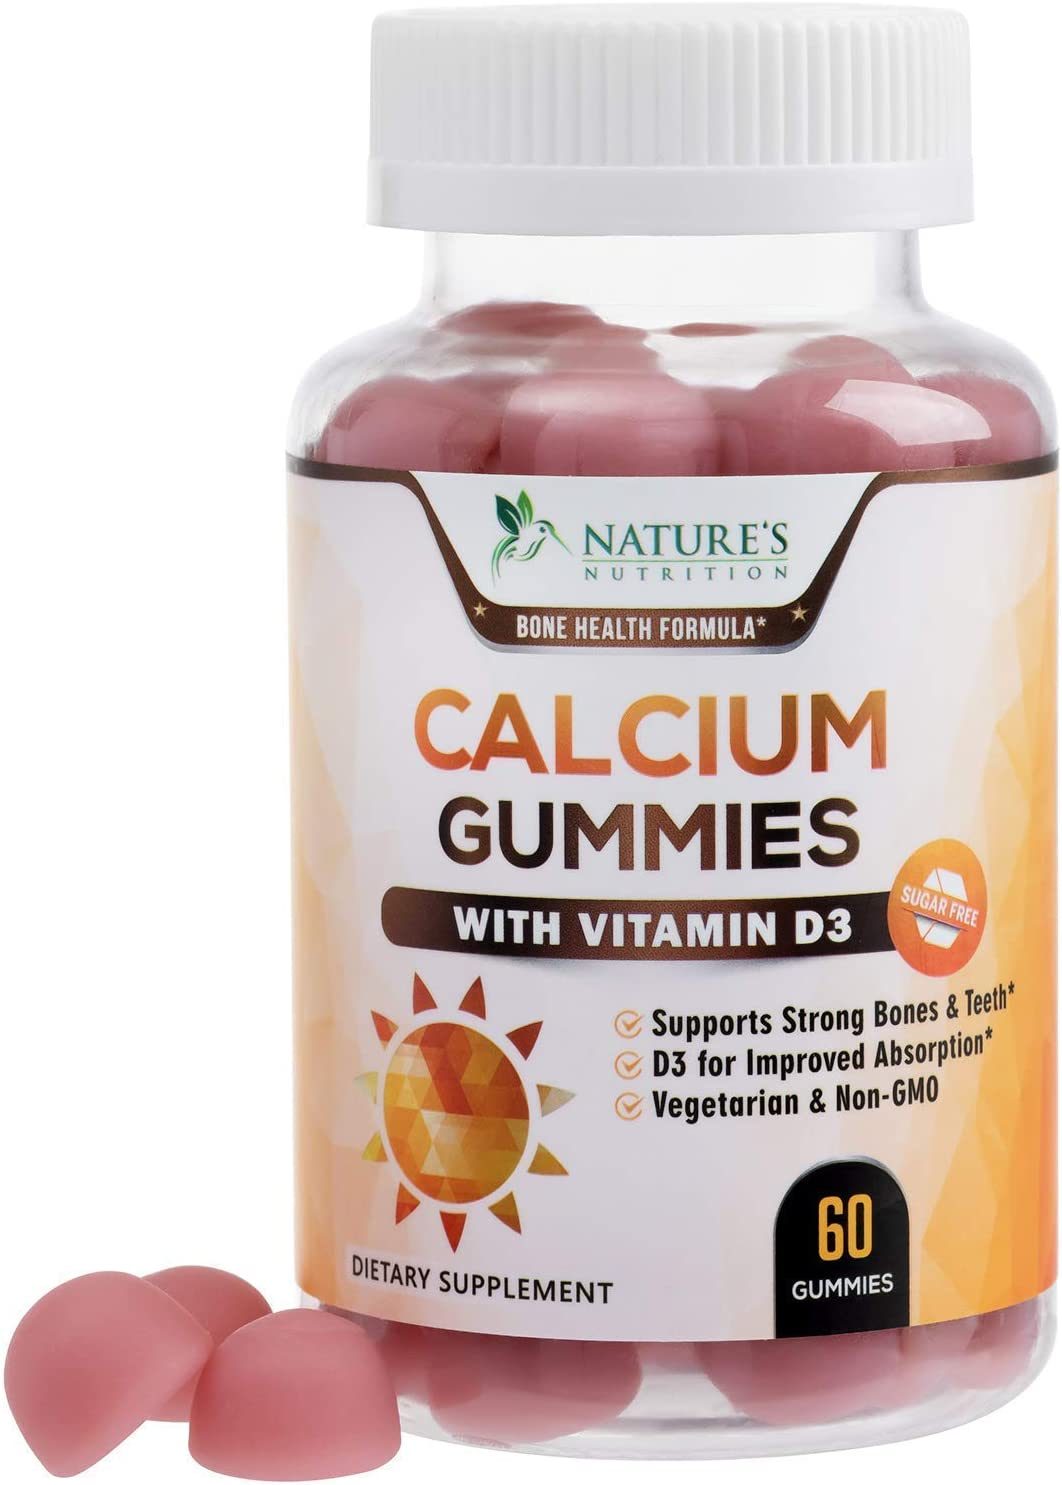 Sugar Free Calcium Gummies with Vitamin D3 - Supports Healthy Bones and Teeth - Highly Concentrated Calcium and Vitamin D Gummy Chews for Men and Women, Non-GMO - 60 Gummies